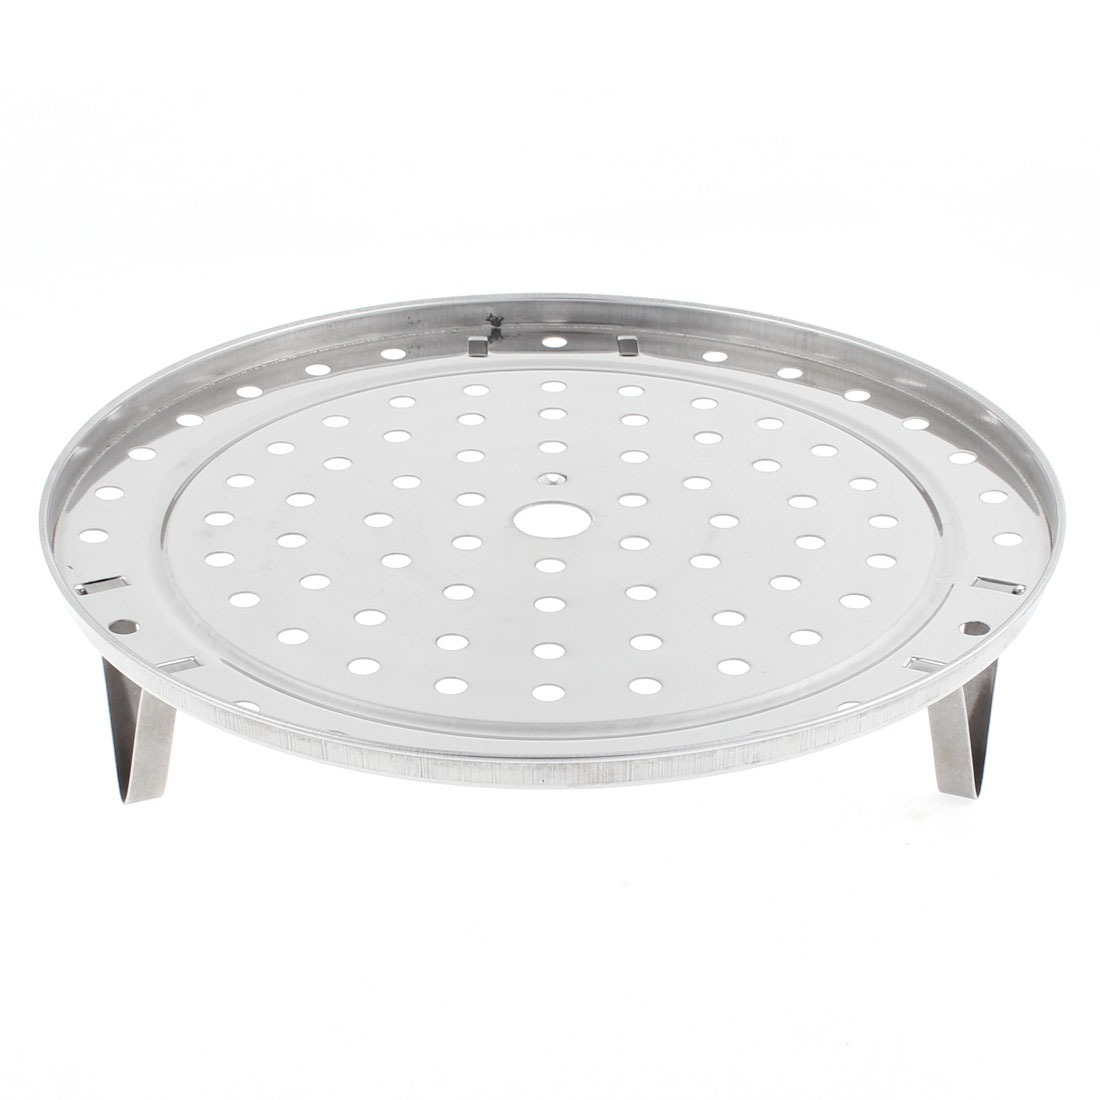 Kitchen Stainless Steel Round Cooking Food Steamer Rack 235mm Dia